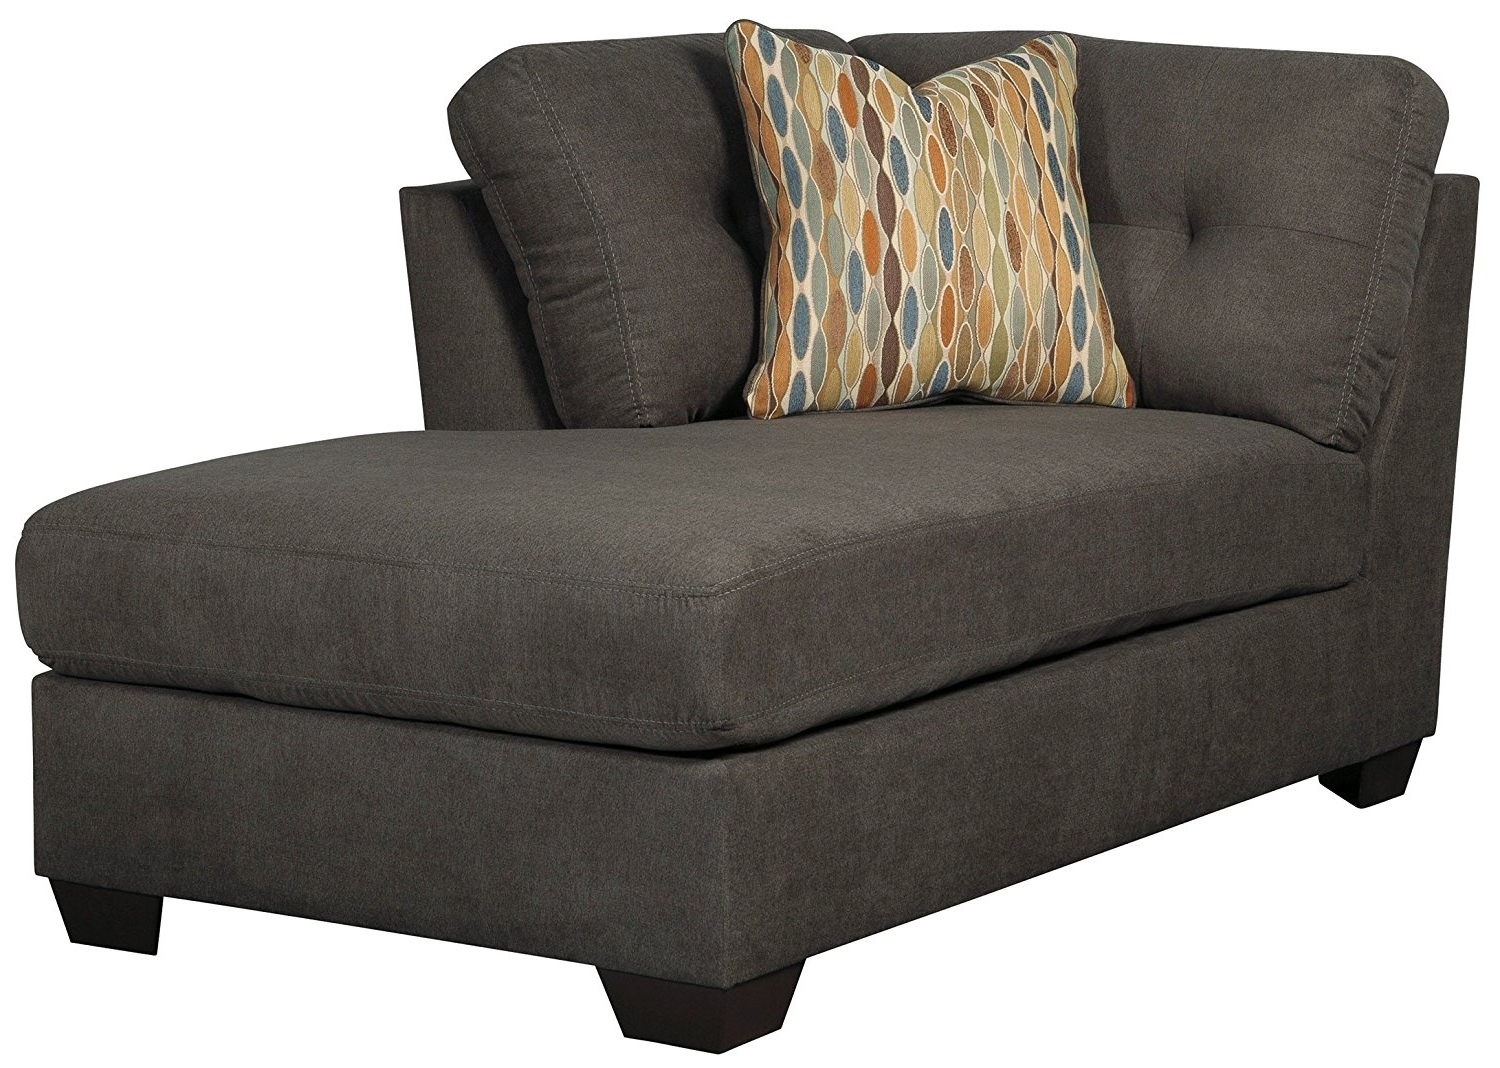 Latest Ashley Chaise Lounges Throughout Amazon: Ashley Furniture Delta City Right Corner Chaise Lounge (View 6 of 15)